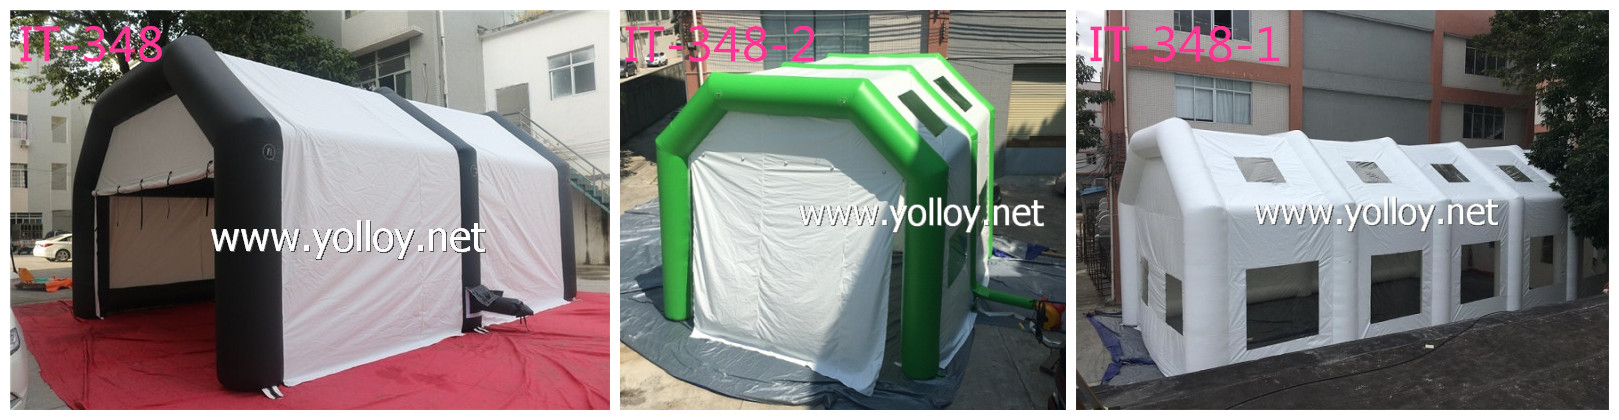 inflatable paintbooth